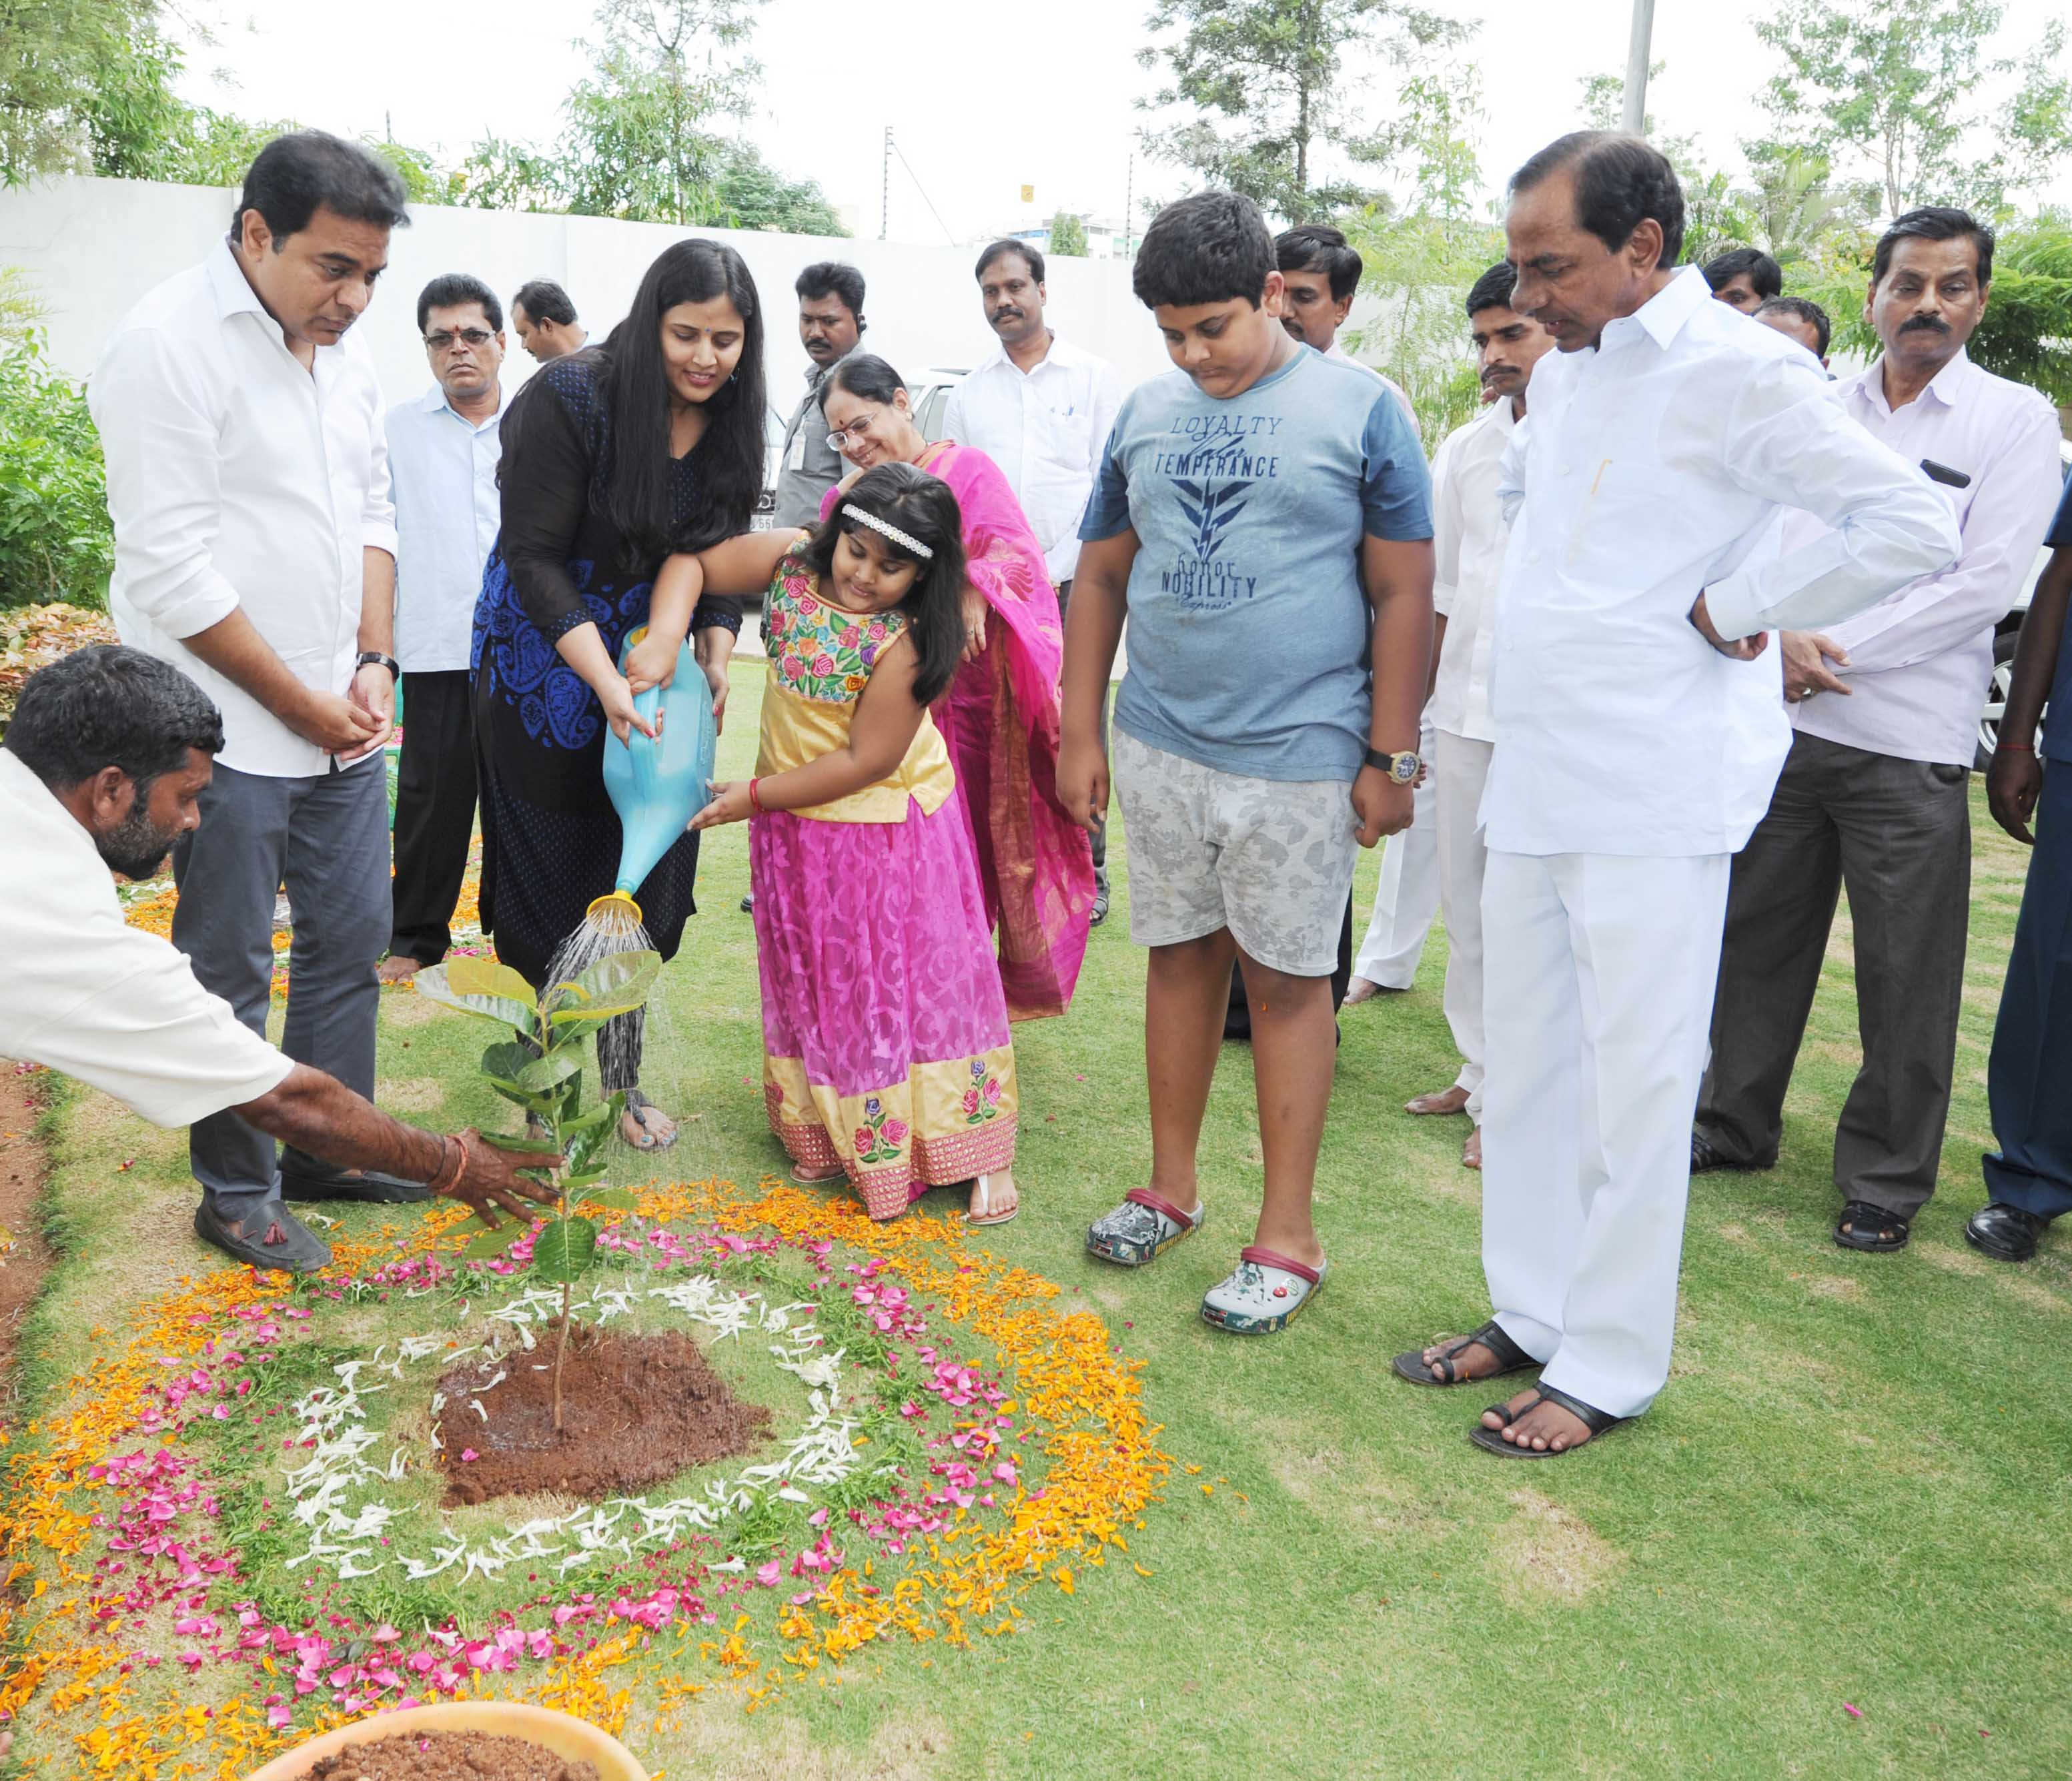 TS Chief Minister K.Chandrashekhar Rao, Minister KT Rama Rao Participated with their family members in Telanganaku Haritha Haram Programme at cm camp office on 13-7- 2016